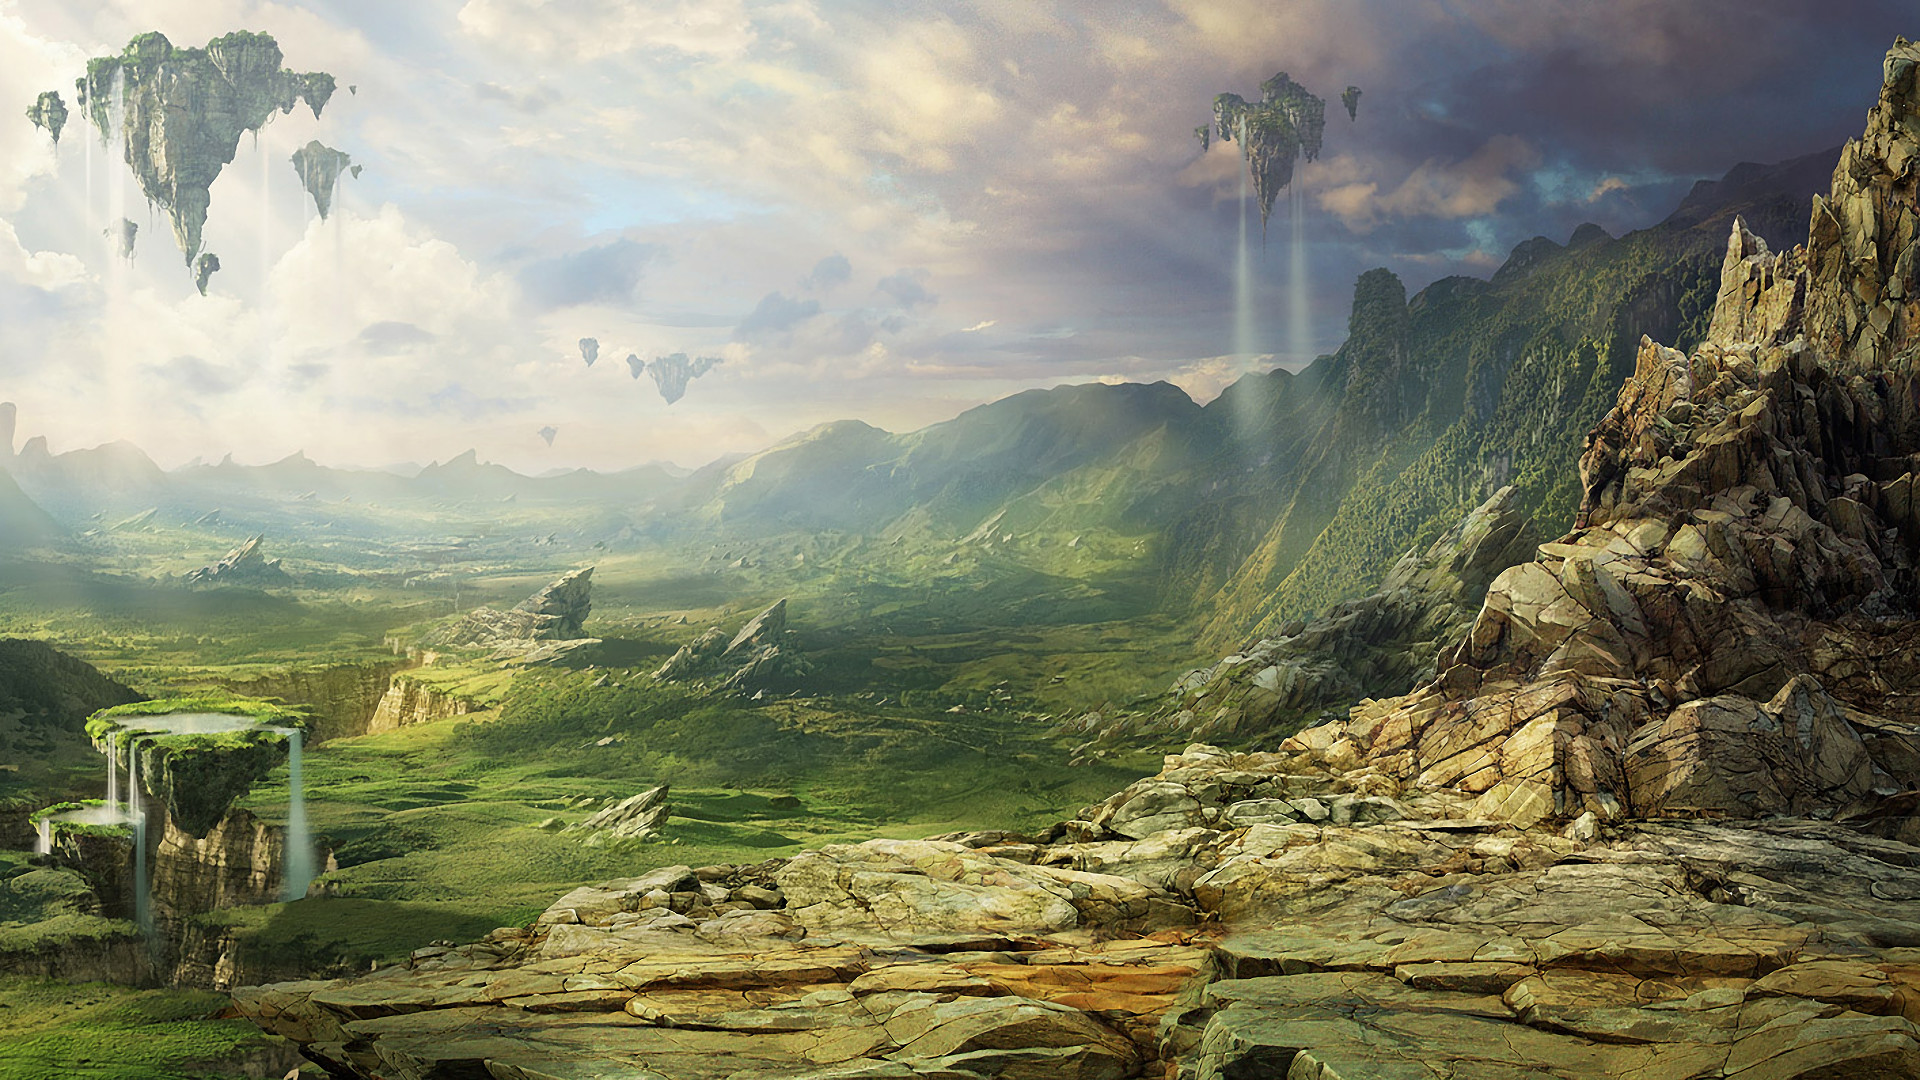 https://images6.alphacoders.com/640/640451.jpg   sci fi places   Pinterest    Landscape wallpaper, Sci fi and Landscaping